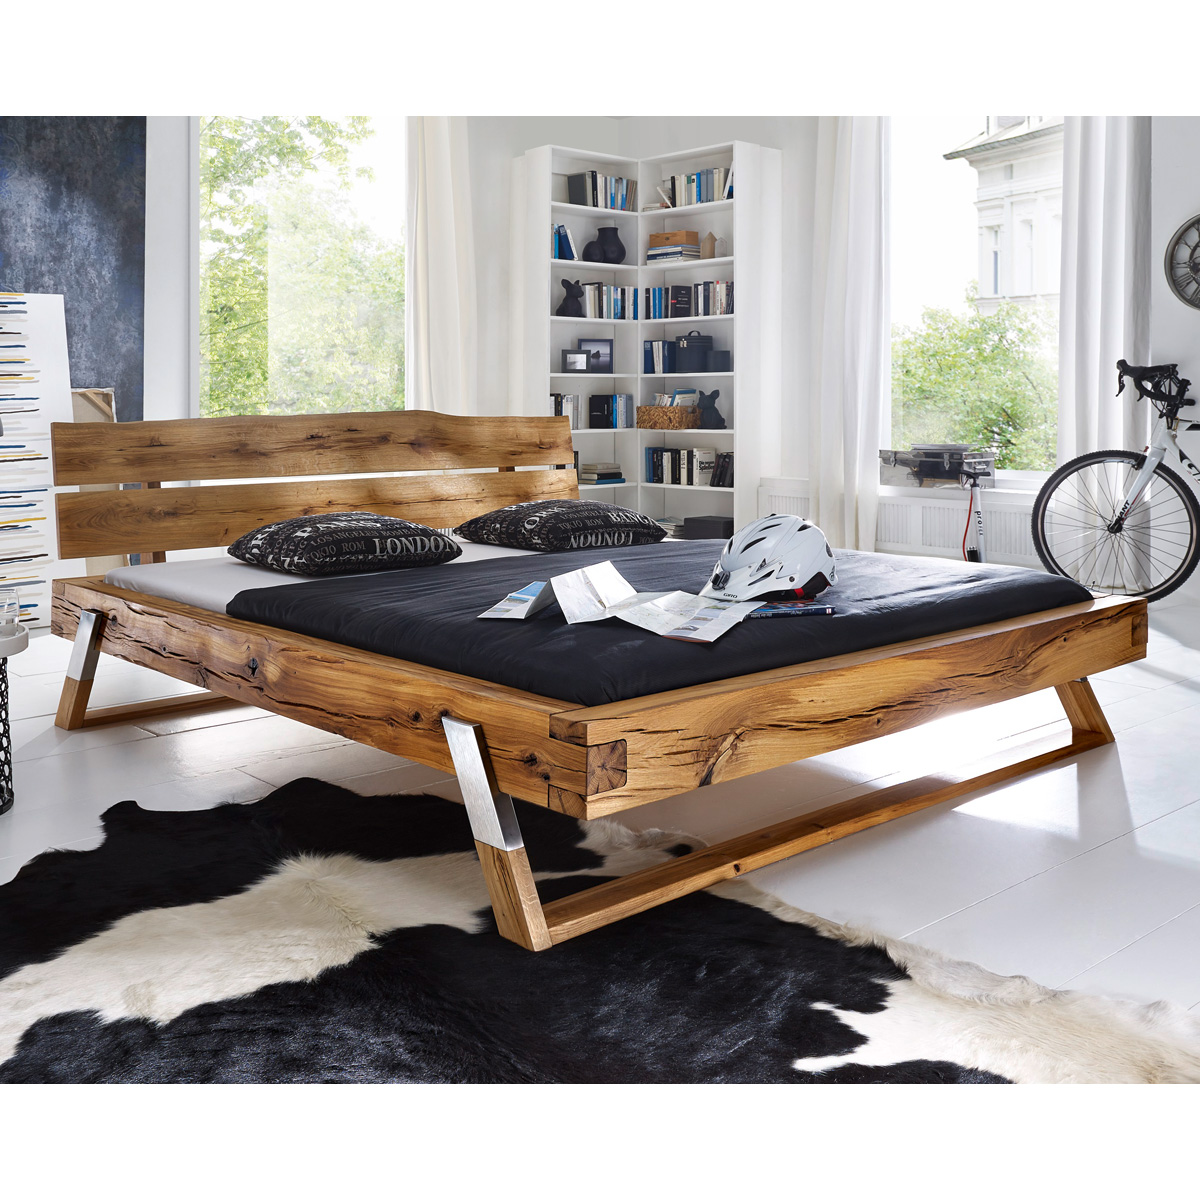 balkenbett gojo doppelbett bett in wildeiche fichte wildbuche massiv 180x200 cm ebay. Black Bedroom Furniture Sets. Home Design Ideas